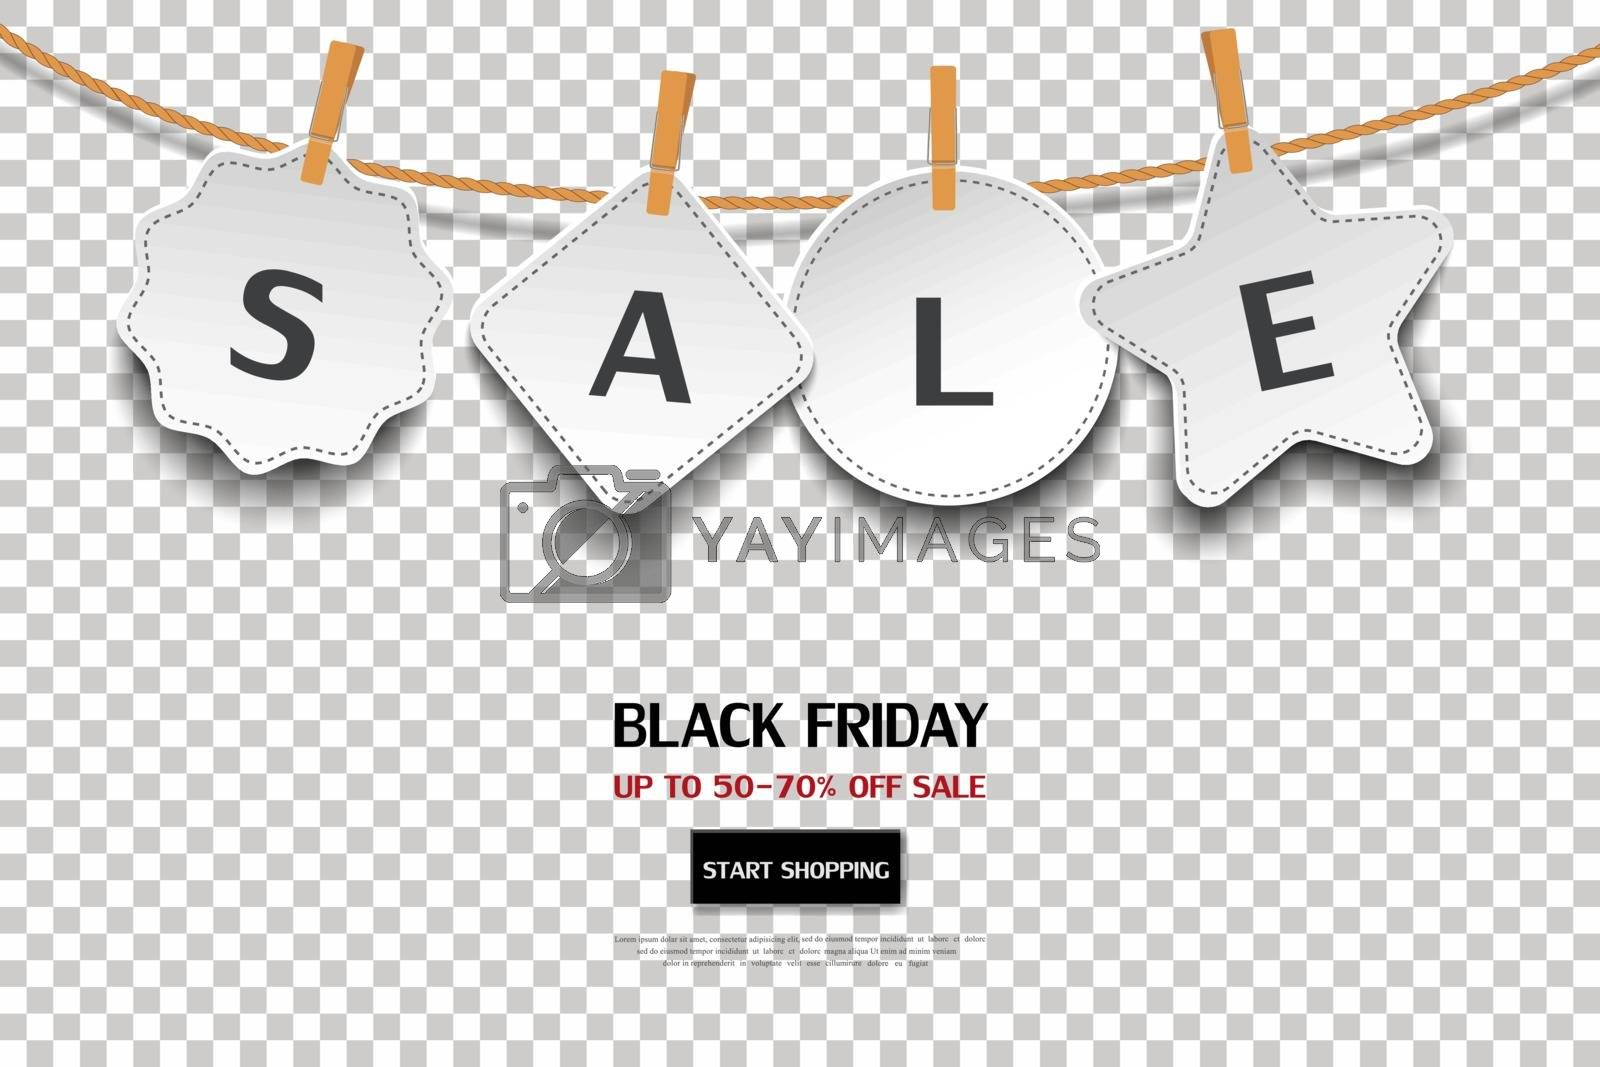 Black friday sale tag on transparent background,for advertising,shopping online,website or promotion by PIMPAKA